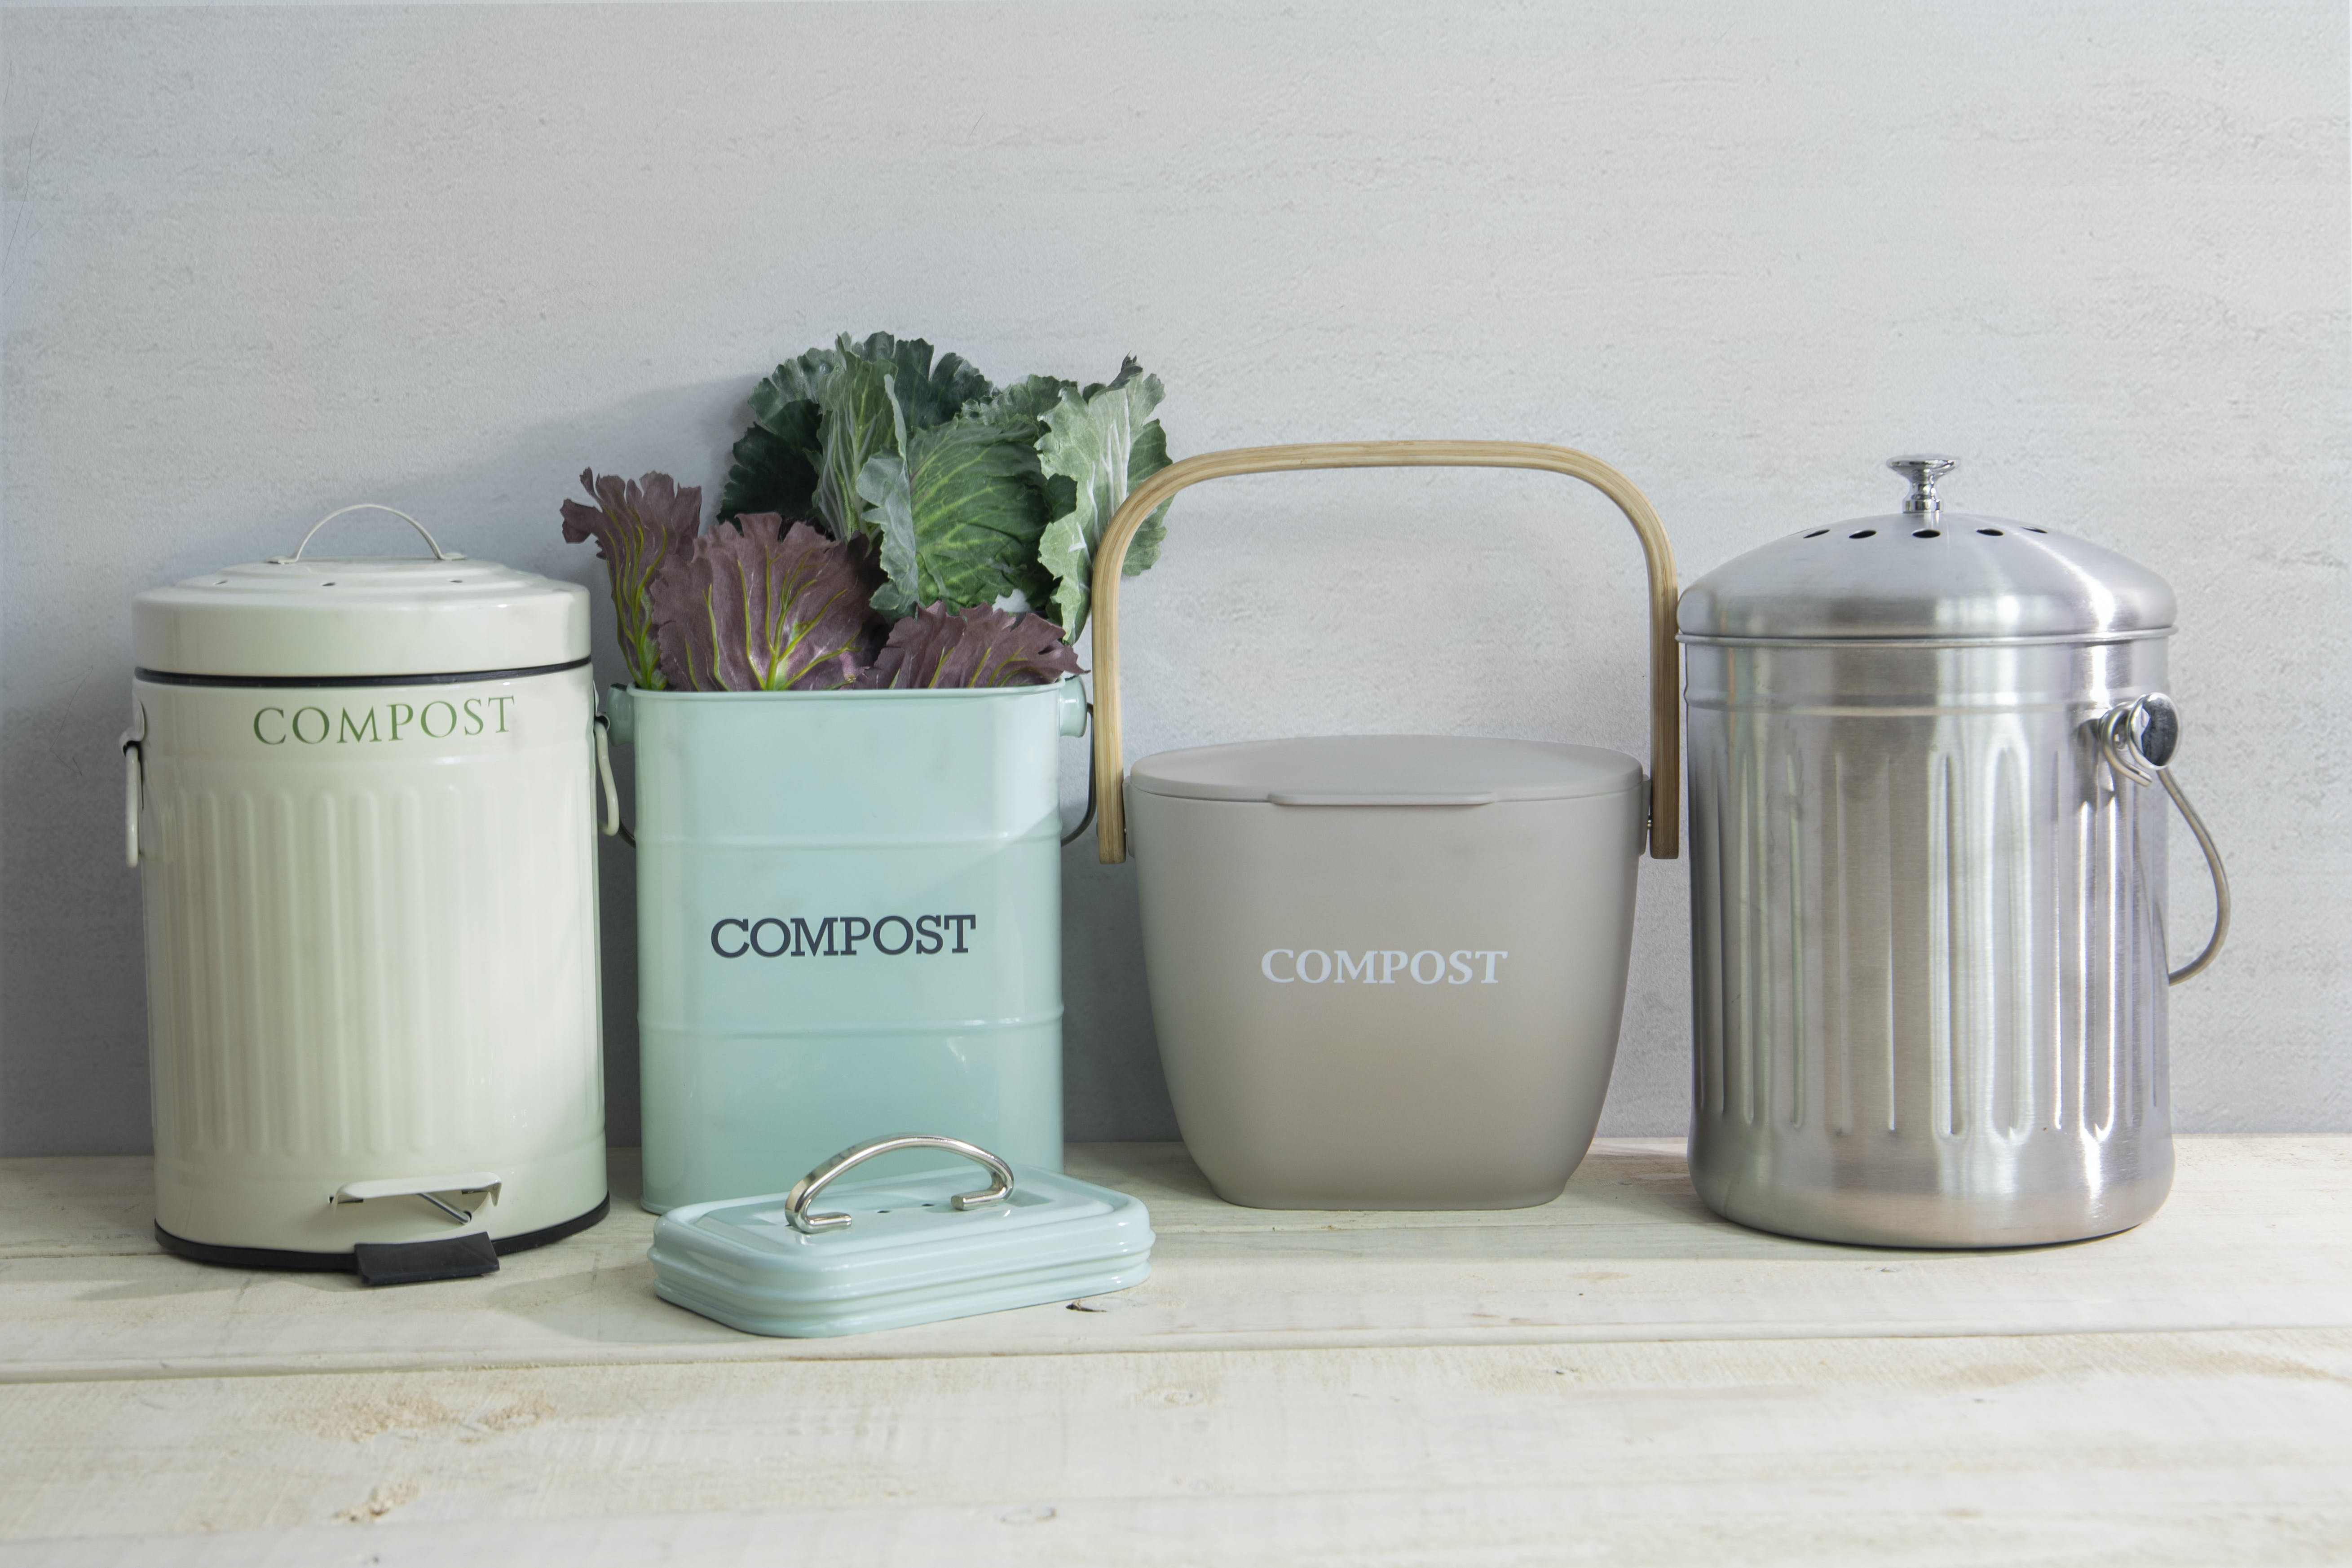 How to Use Compost Bins